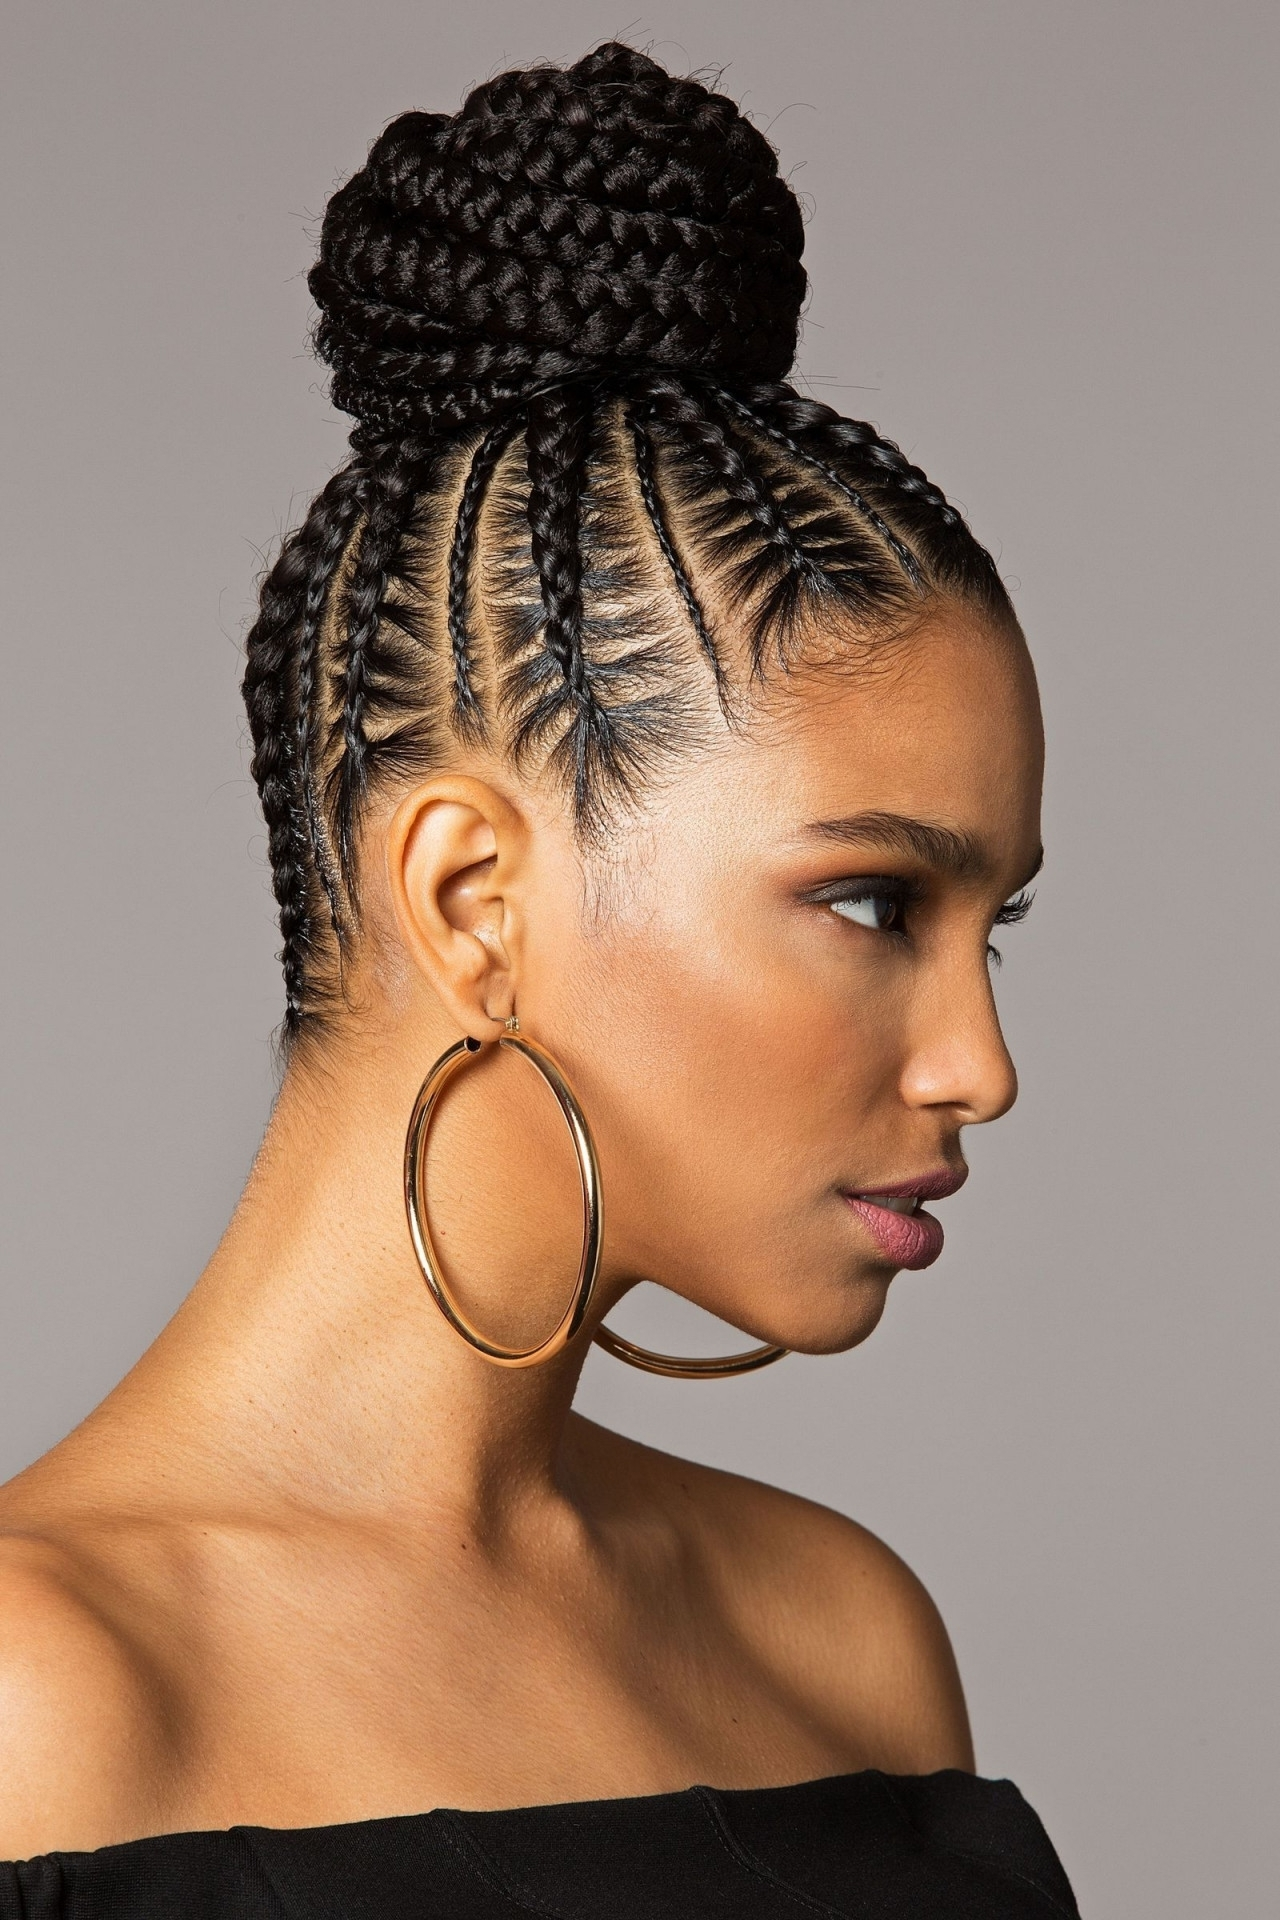 Updo Cornrow Hairstyles For Black Women 2018 – Twelveminutemuse Within Favorite Cornrows Hairstyles For Oval Faces (View 14 of 15)